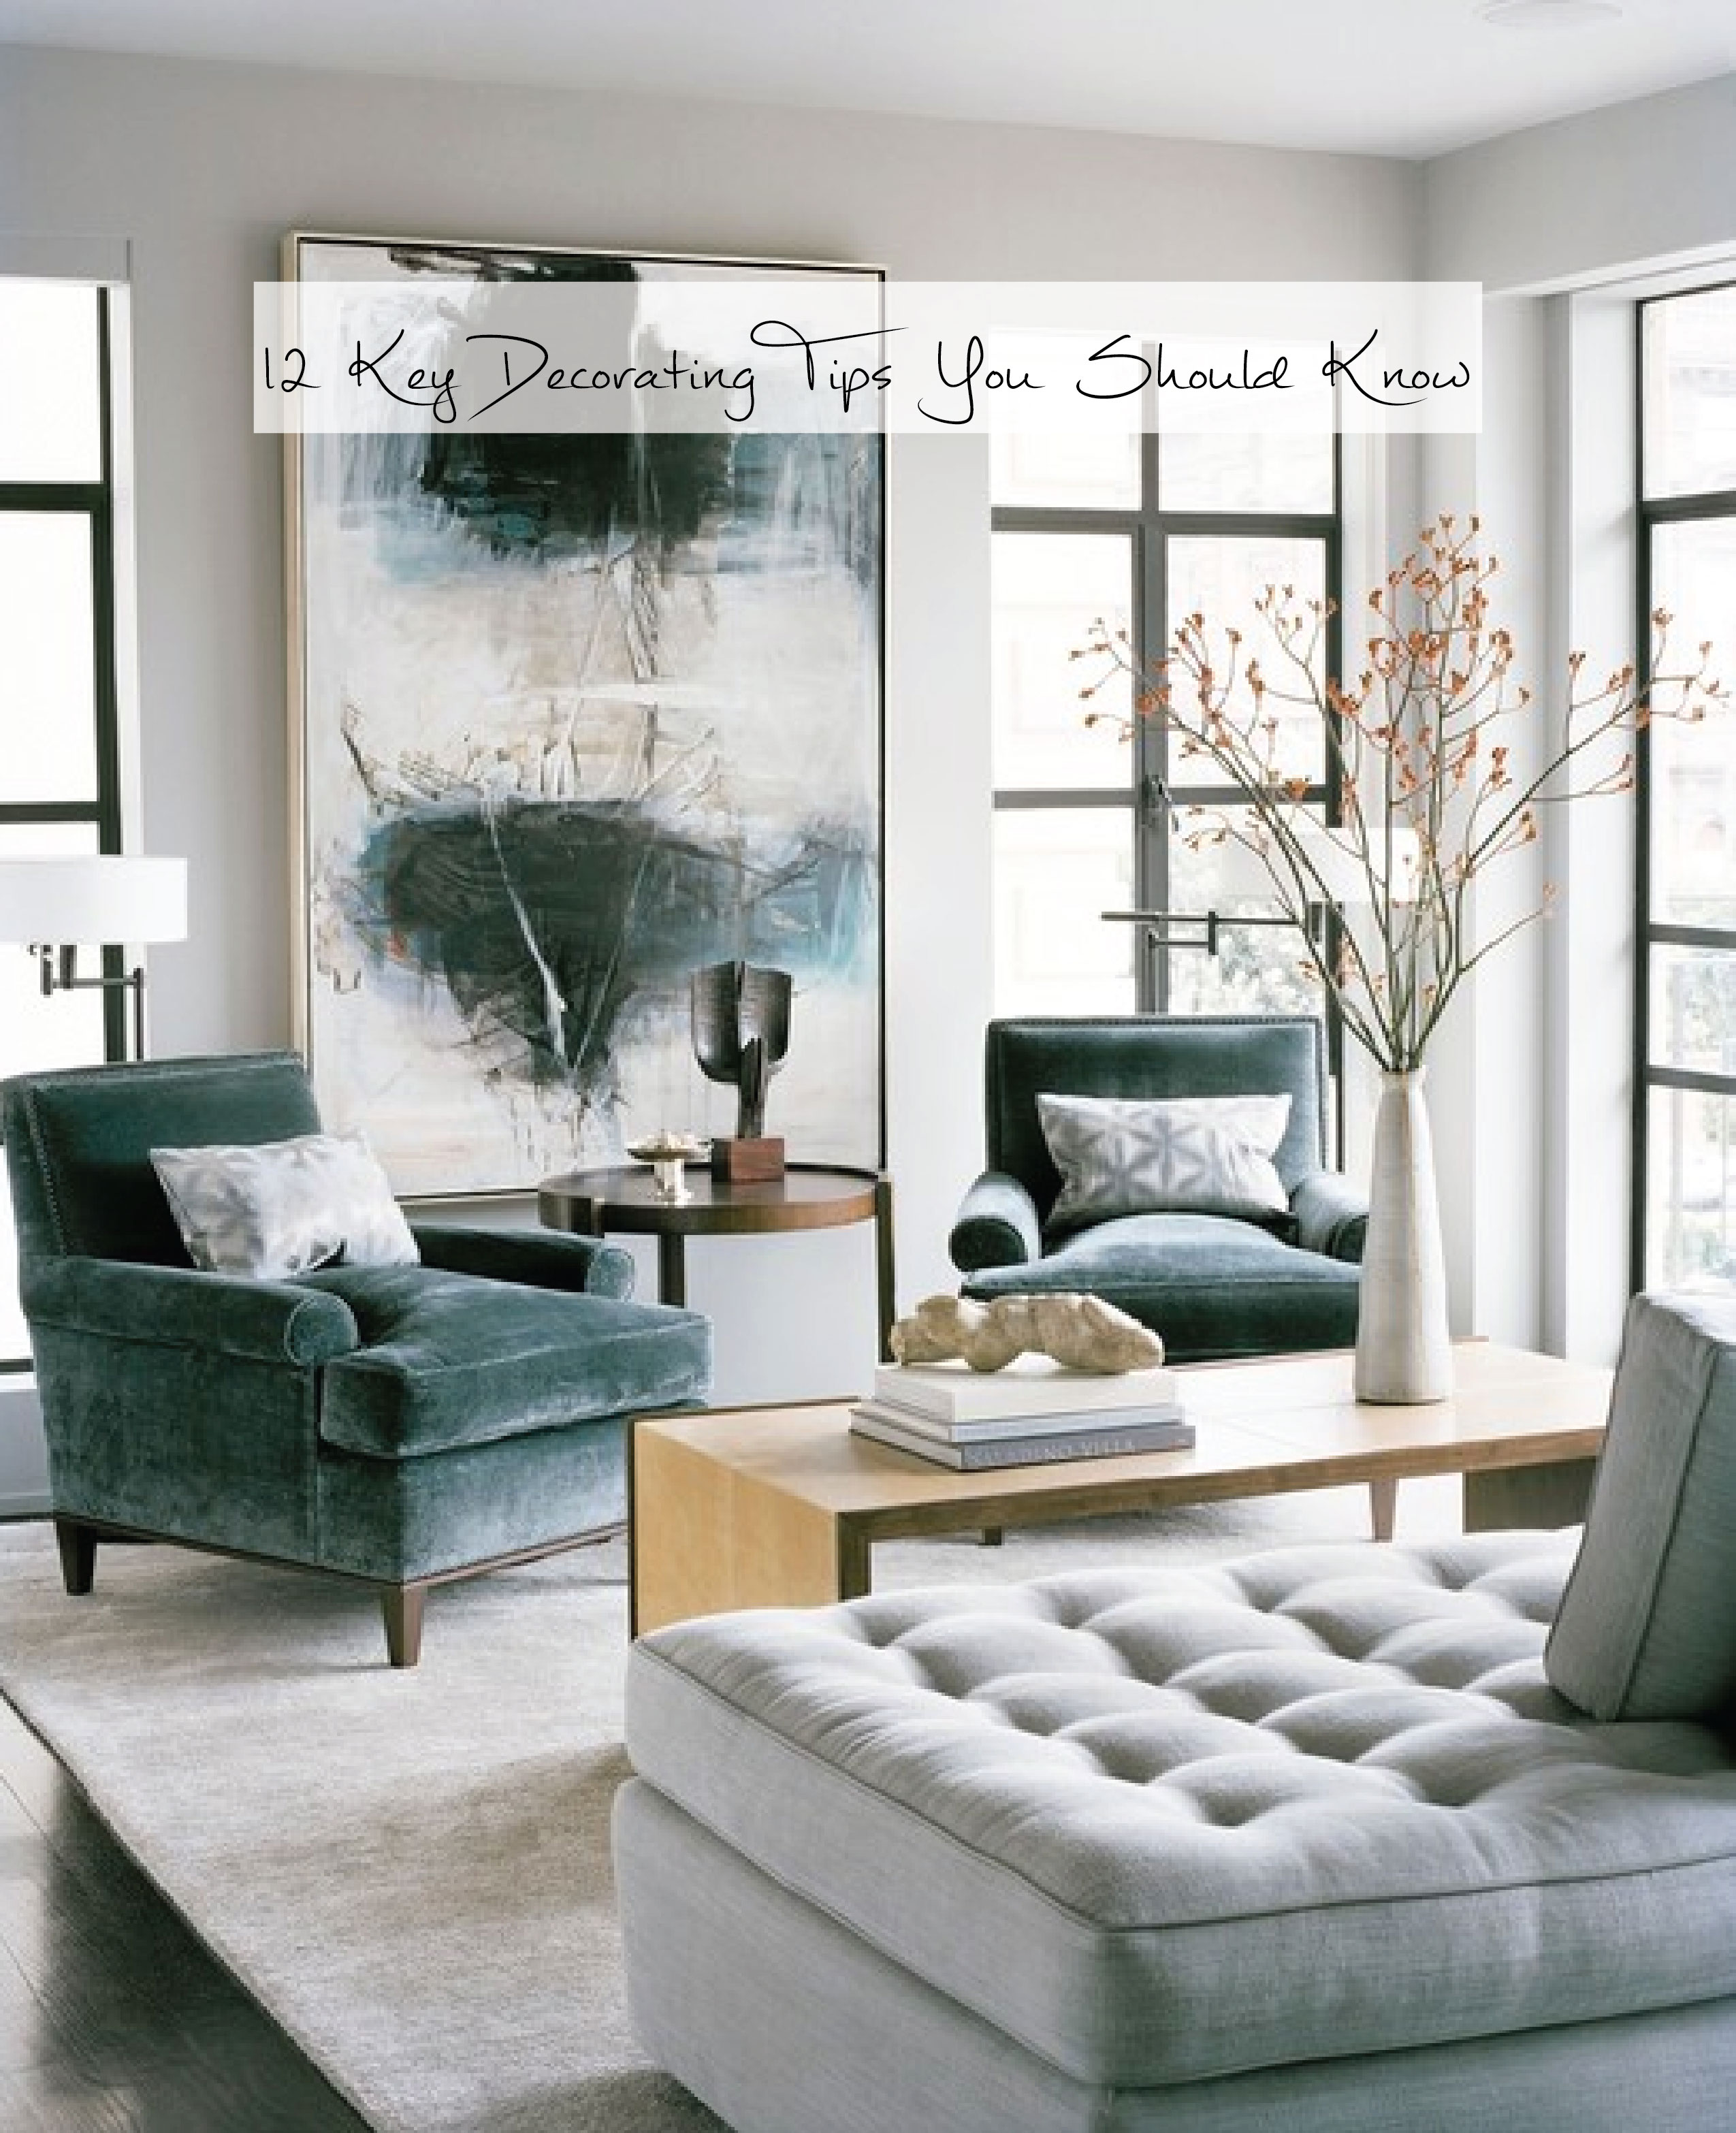 Design Ideas Tips Inspiration: 12-Key-Decorating-Tips-You-Should-Know-Home-Inspiration